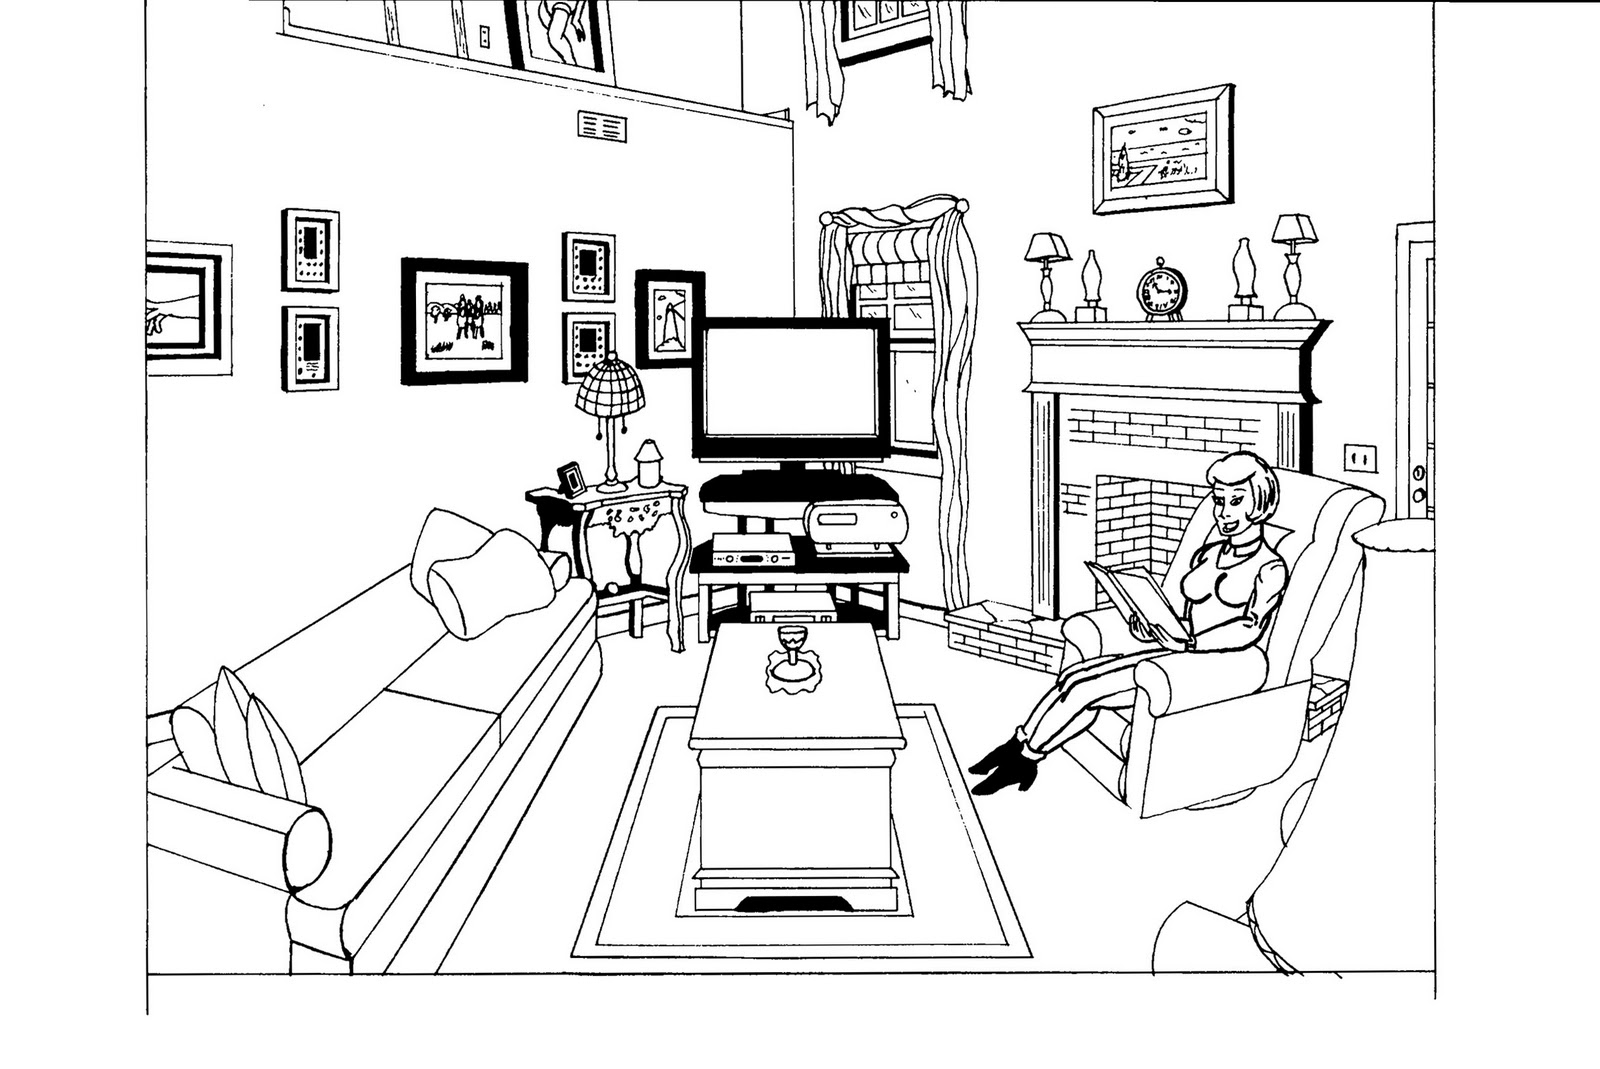 Image #22406 - Coloriage salon gratuit